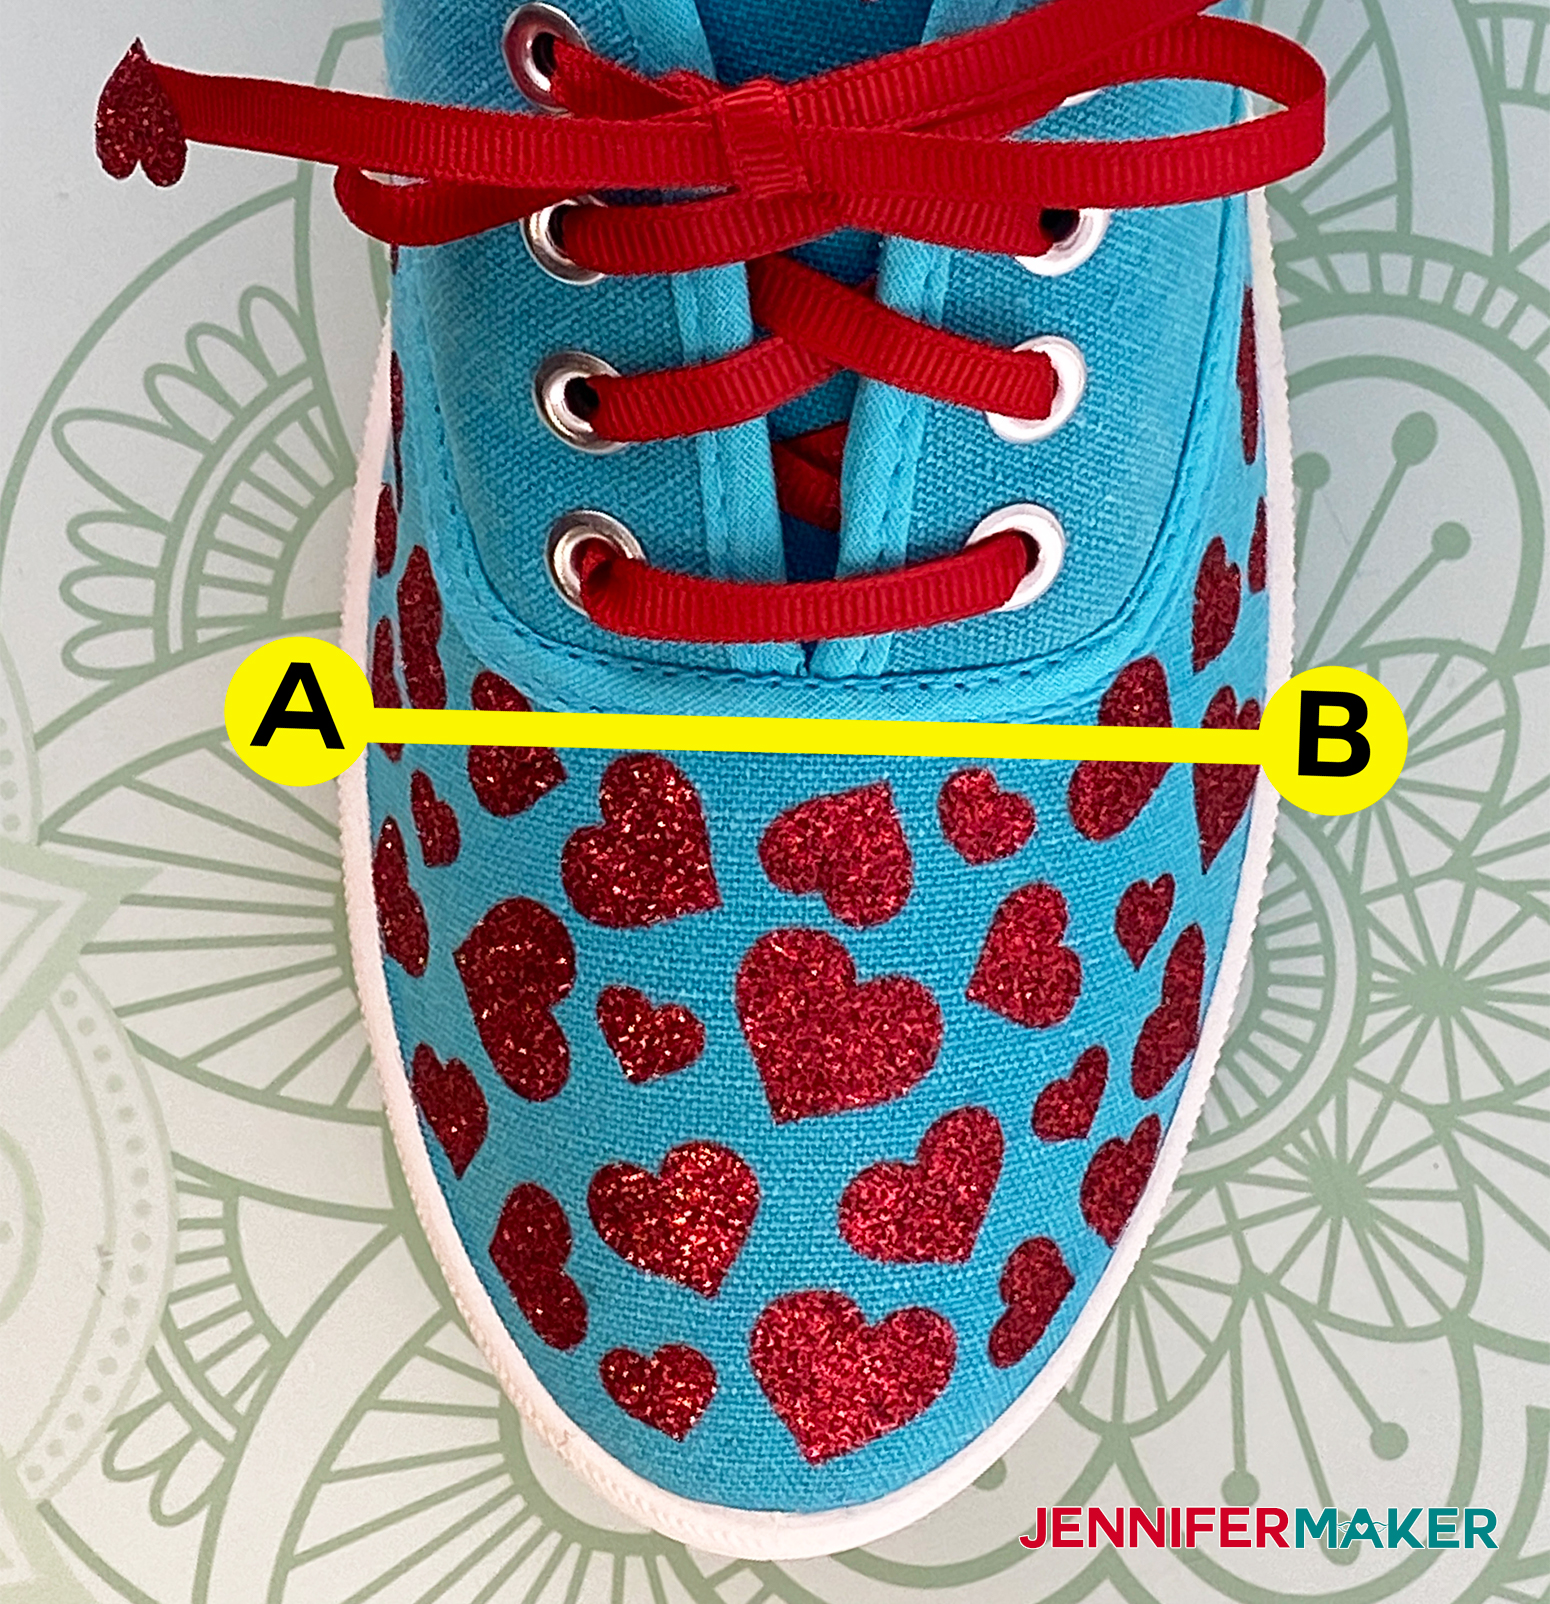 Measure the width of your sneaker from point A to point B